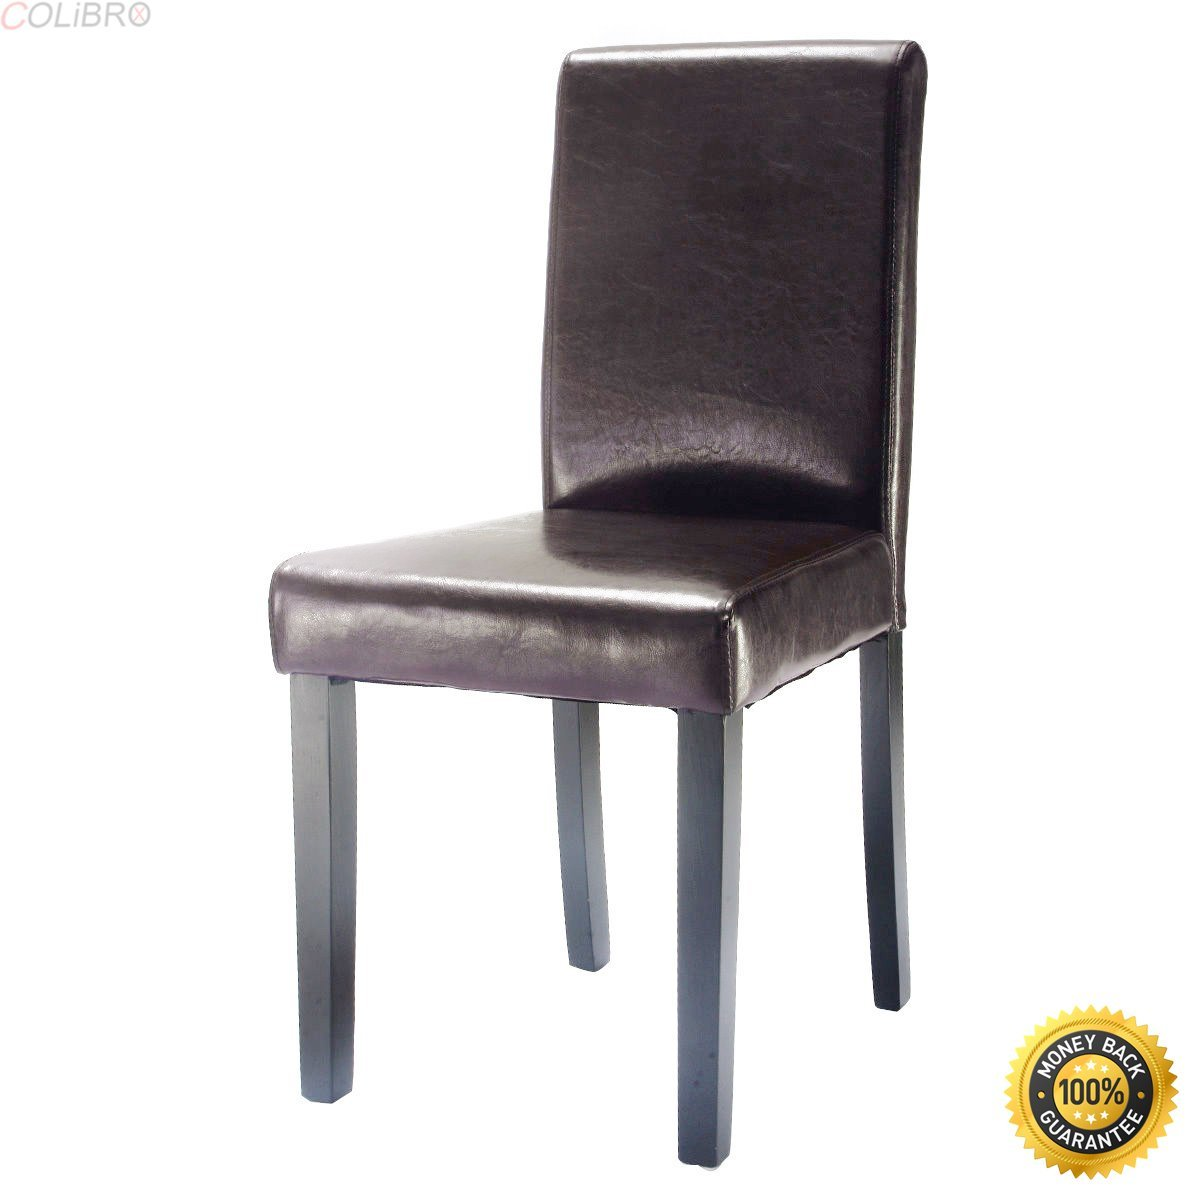 Leather Dining Room Chairs Cheap Acrylic Dining Chairs Sale Find Acrylic Dining Chairs Sale